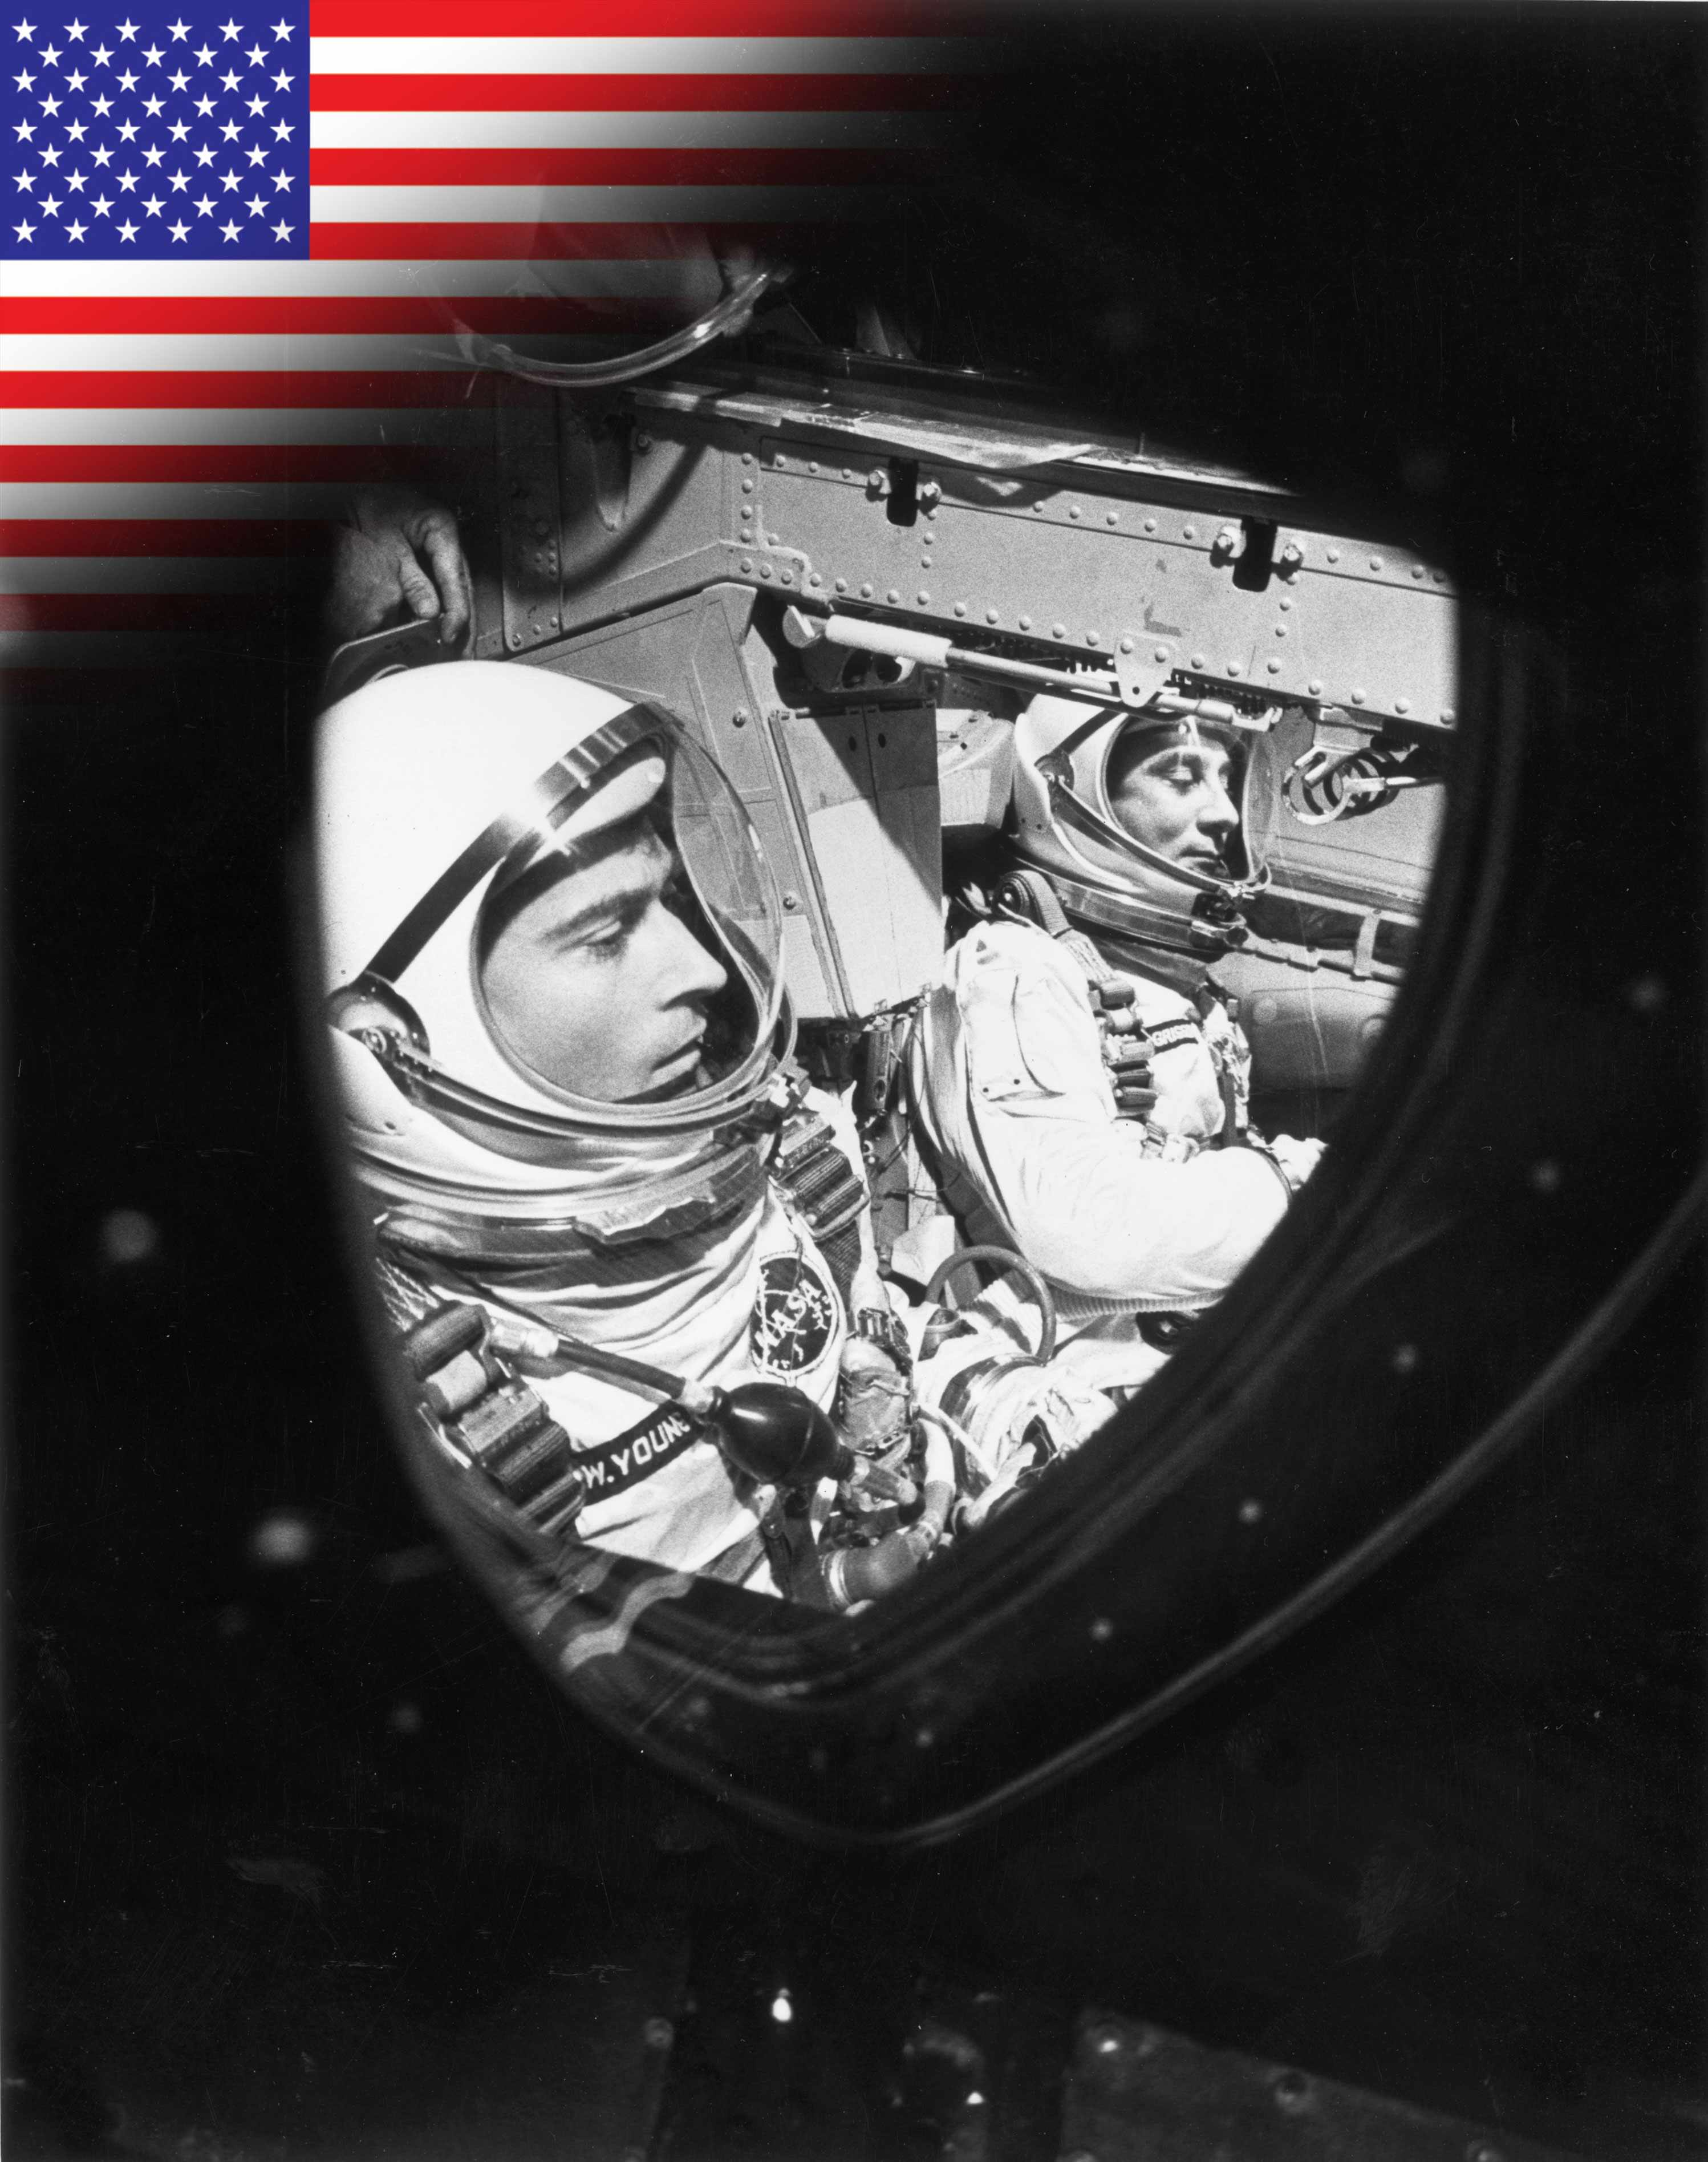 Gemini 3 sees two astronauts orbit Earth and return safely. (John W. Young (L) and Virgil 'Gus' Grissom (R) sitting in the GT-3 spacecraft just before the hatches were closed © NASA/Getty Images)